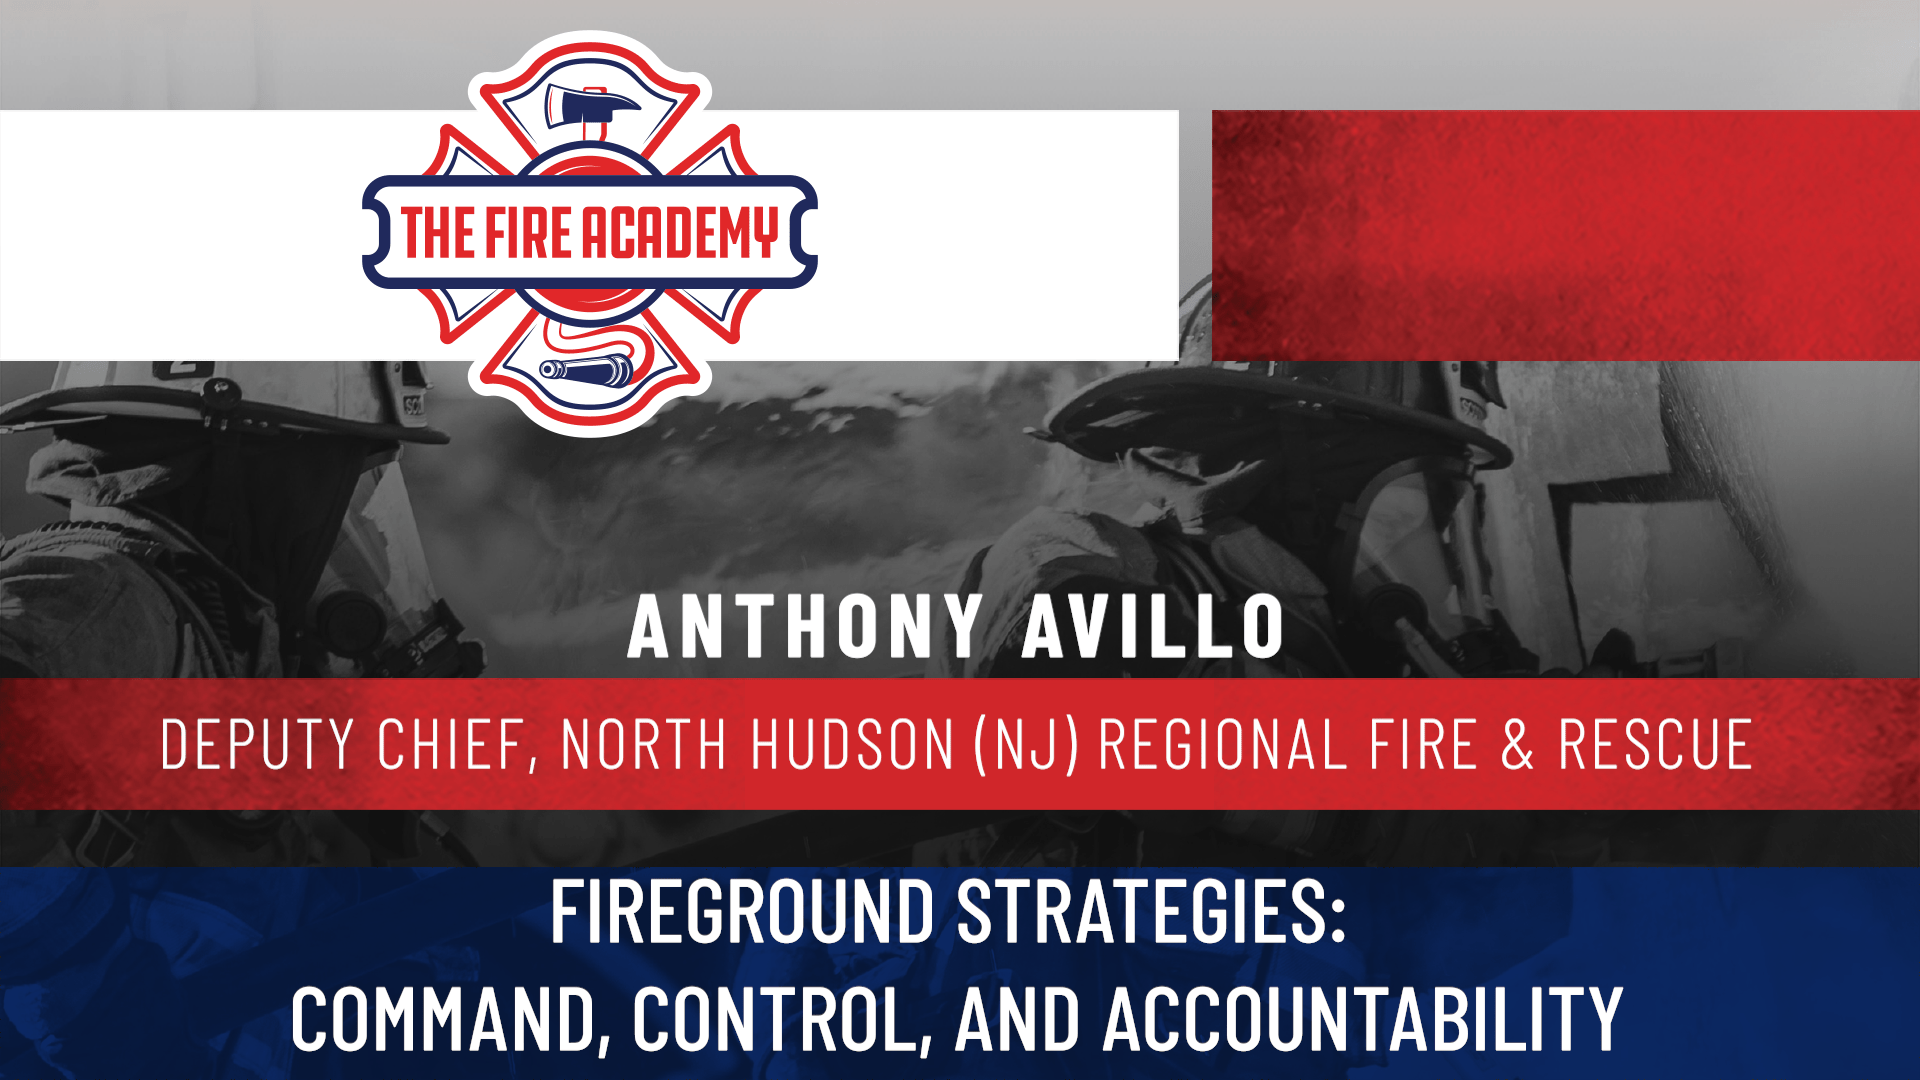 Fireground Strategies: Command, Control, and Accountability